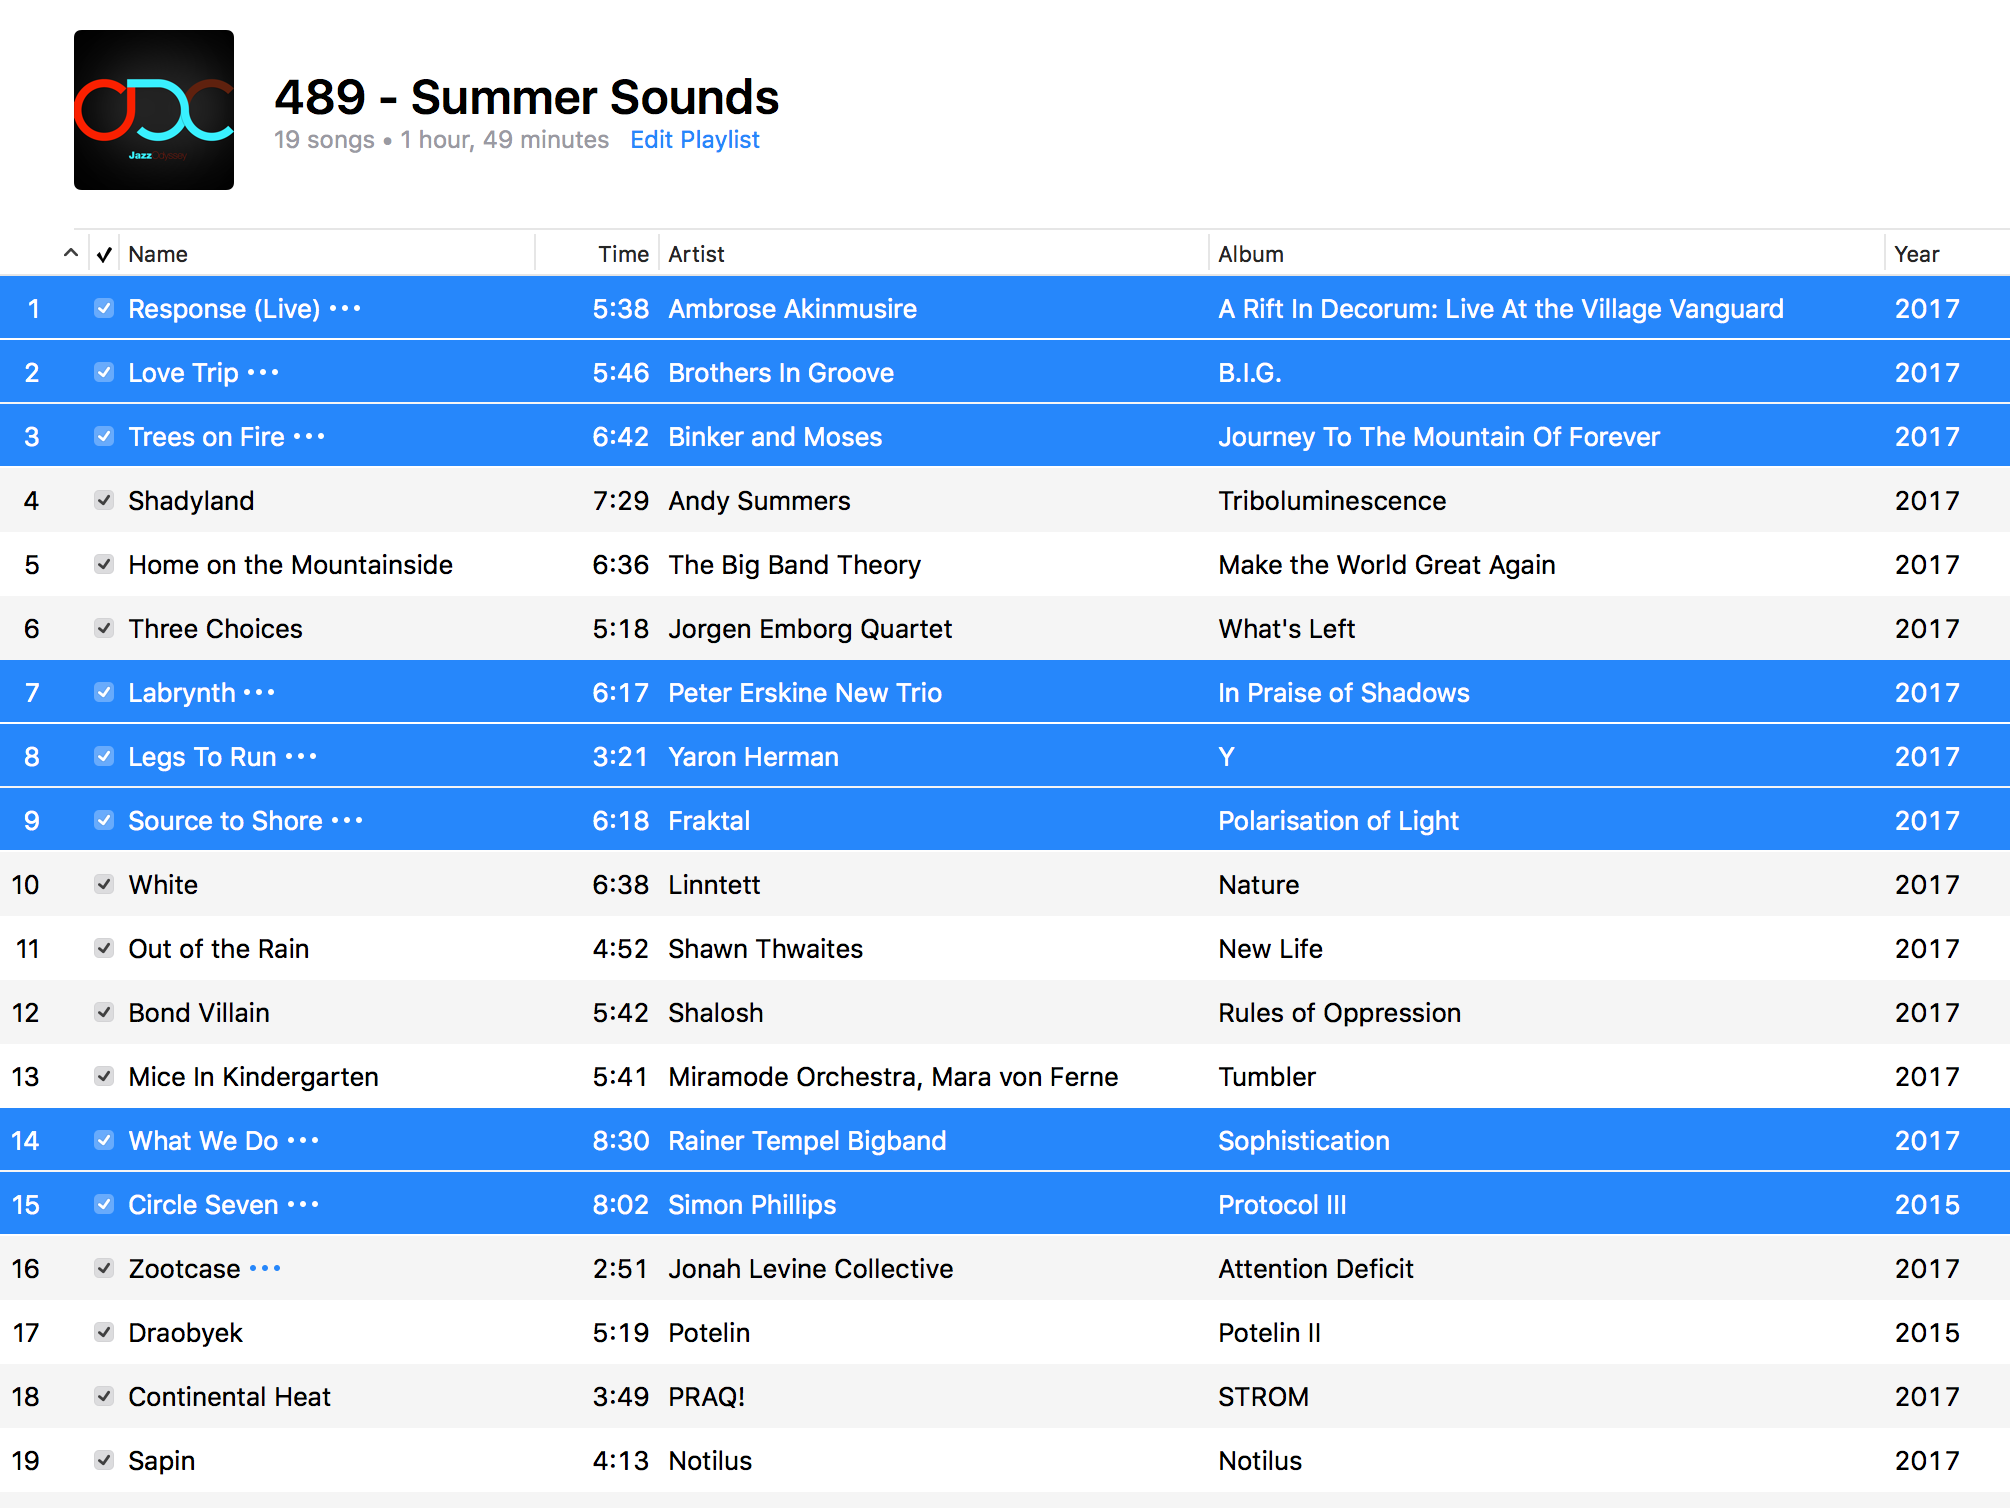 Jazz ODC #489 - Summer Sounds - Playlist